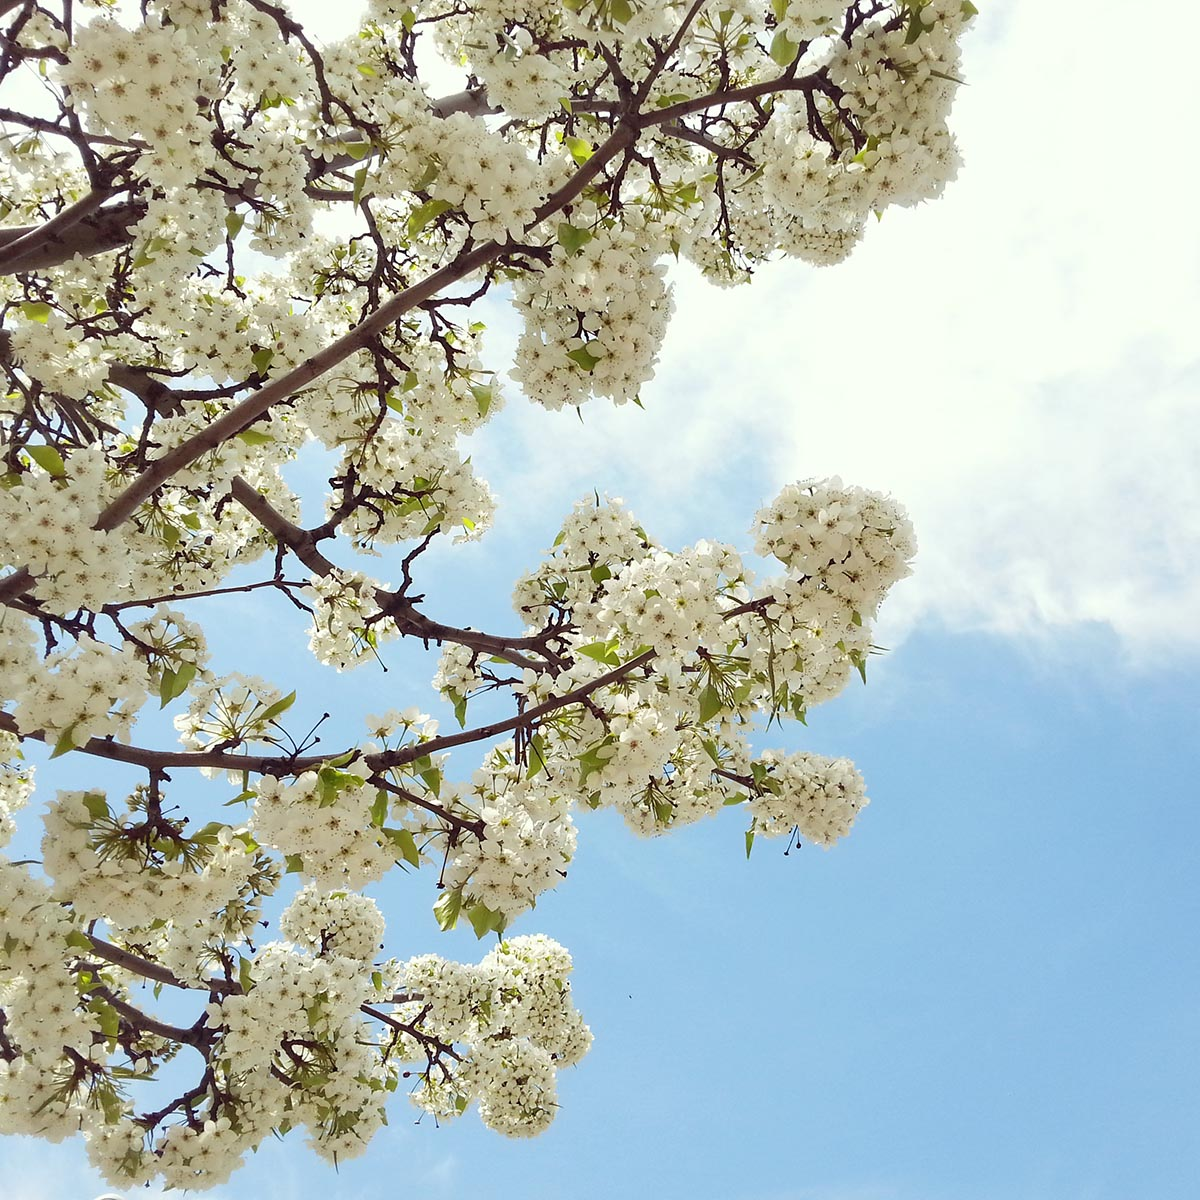 Free stock photo White blossoms against a blue sky